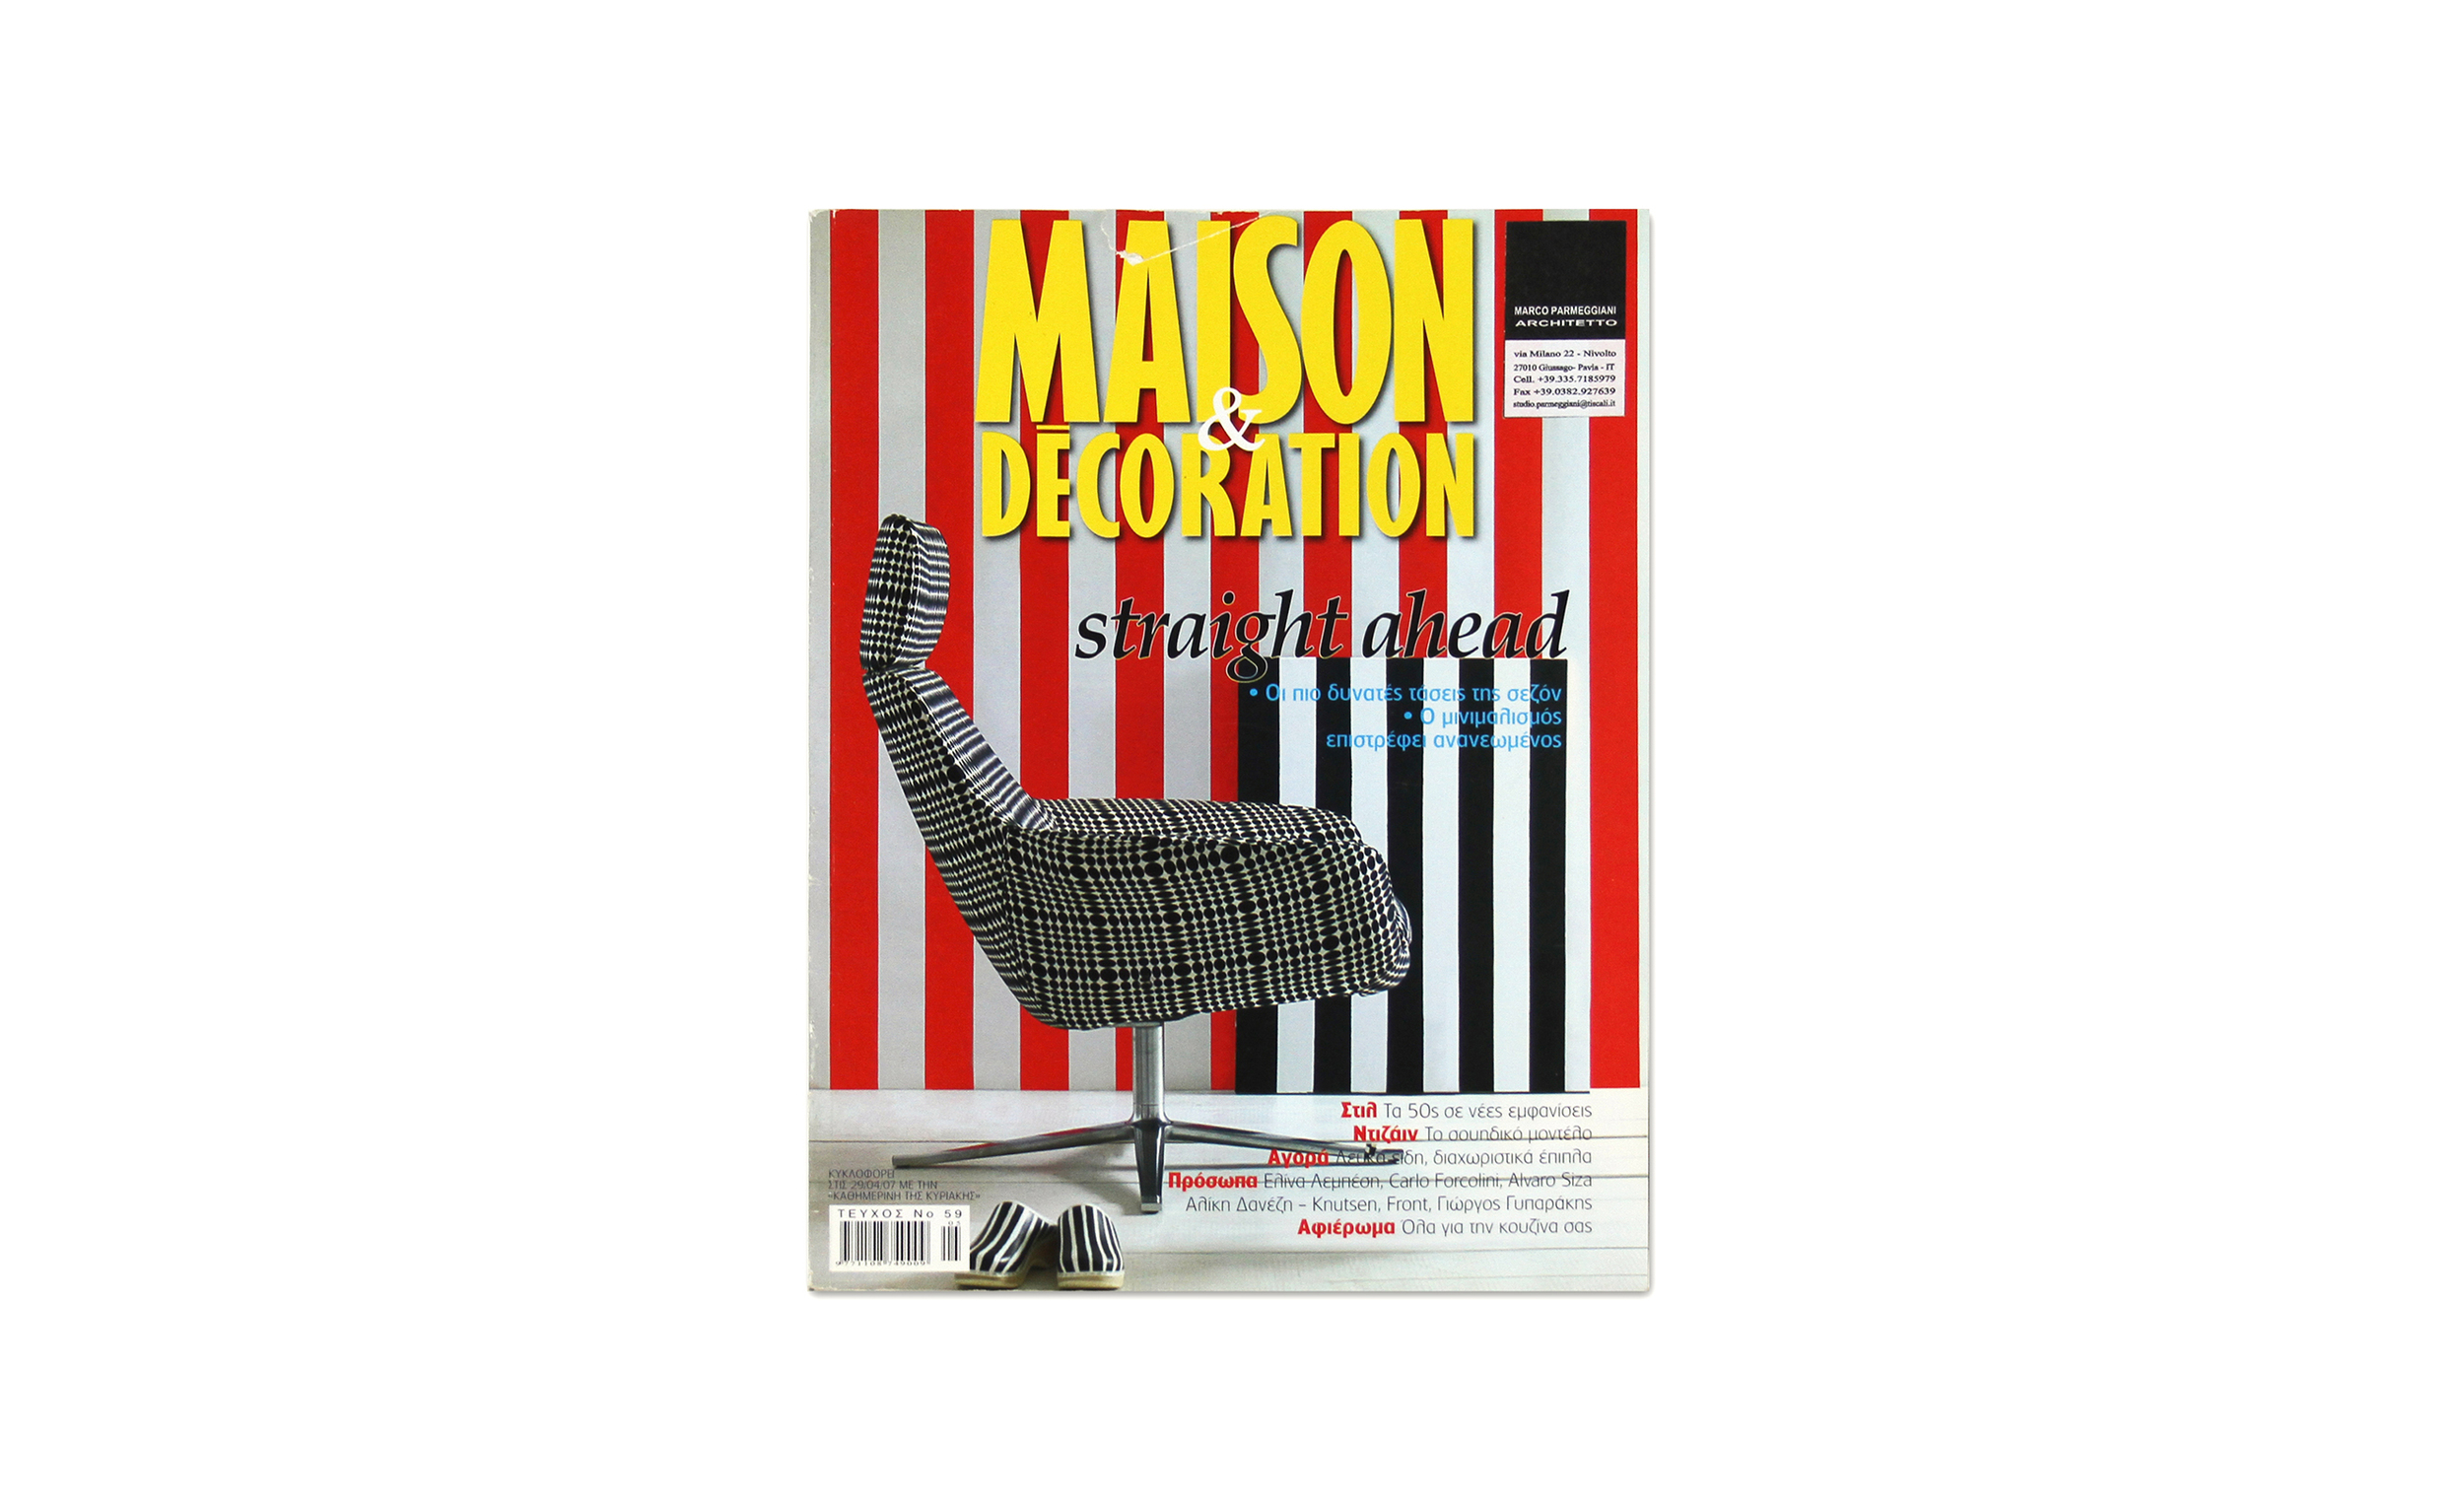 Maison Decoation Straight Ahead COVER.jpg